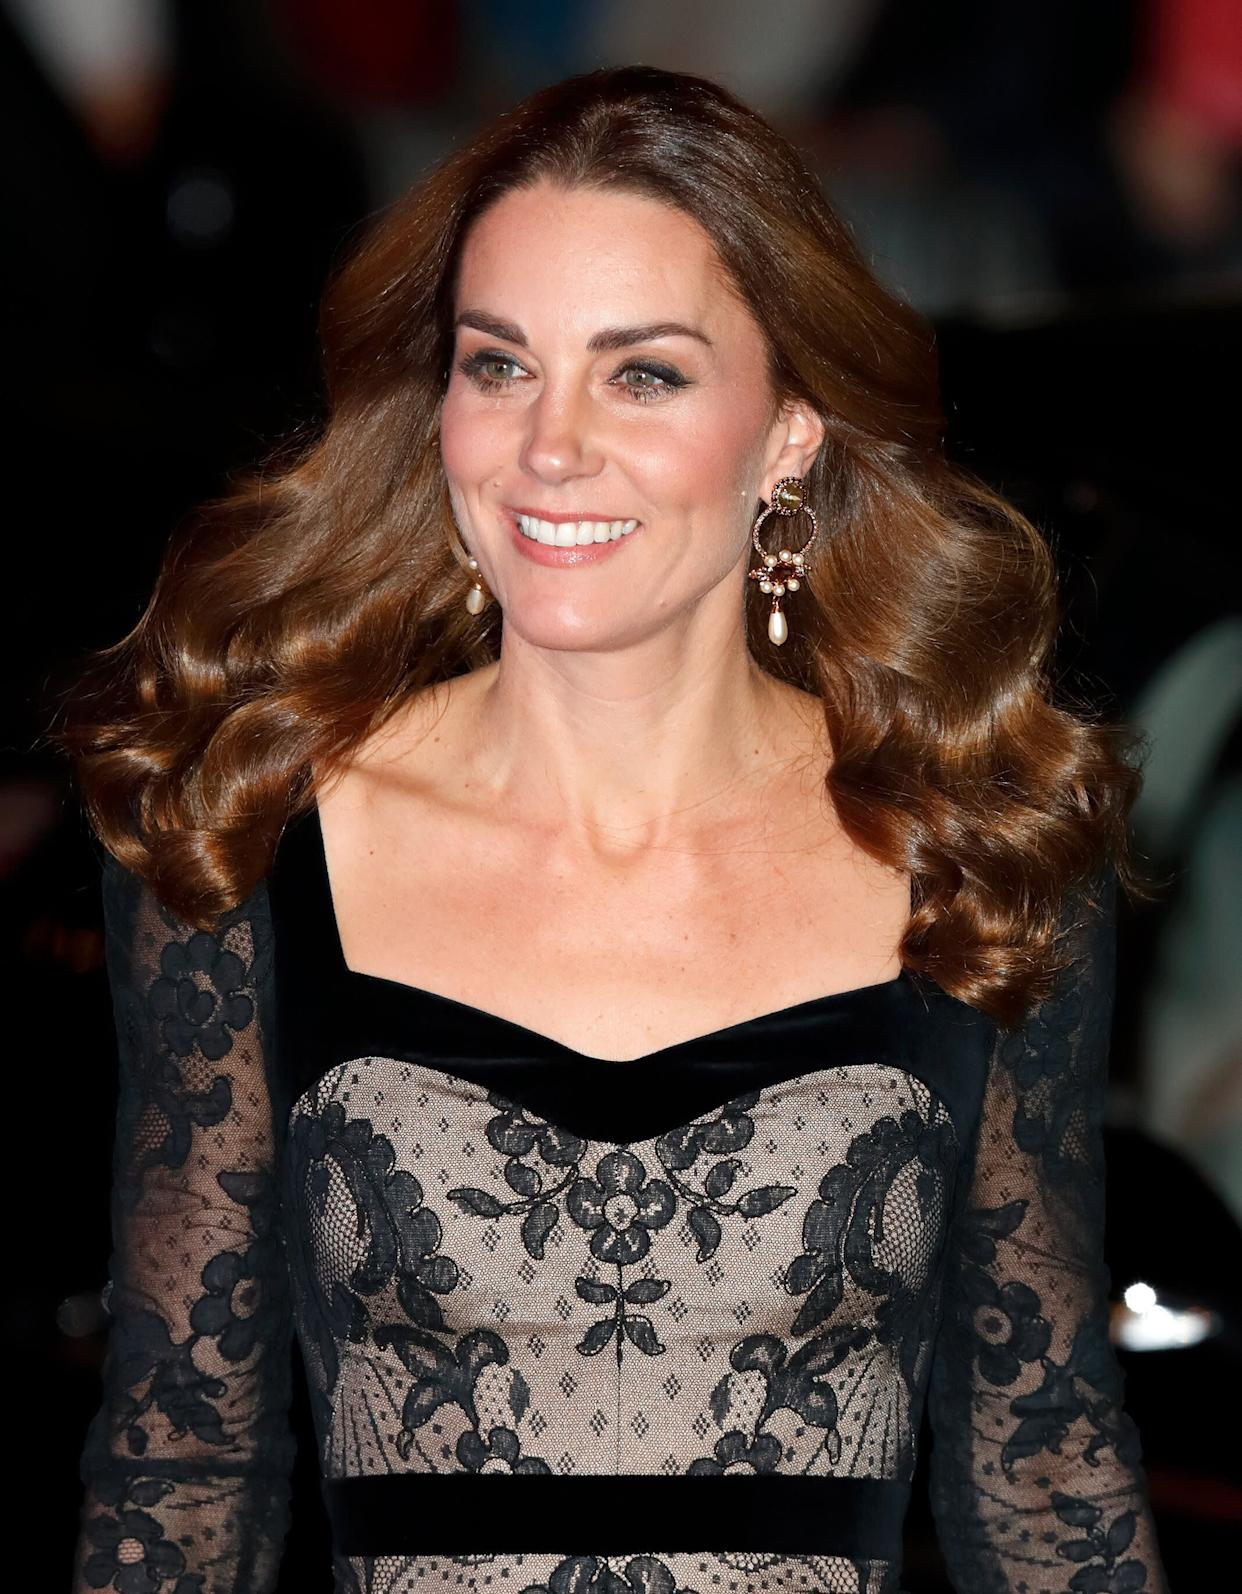 Kate chose a dress by one of her favorite designers, Alexander McQueen. (Photo: Max Mumby/Indigo via Getty Images)